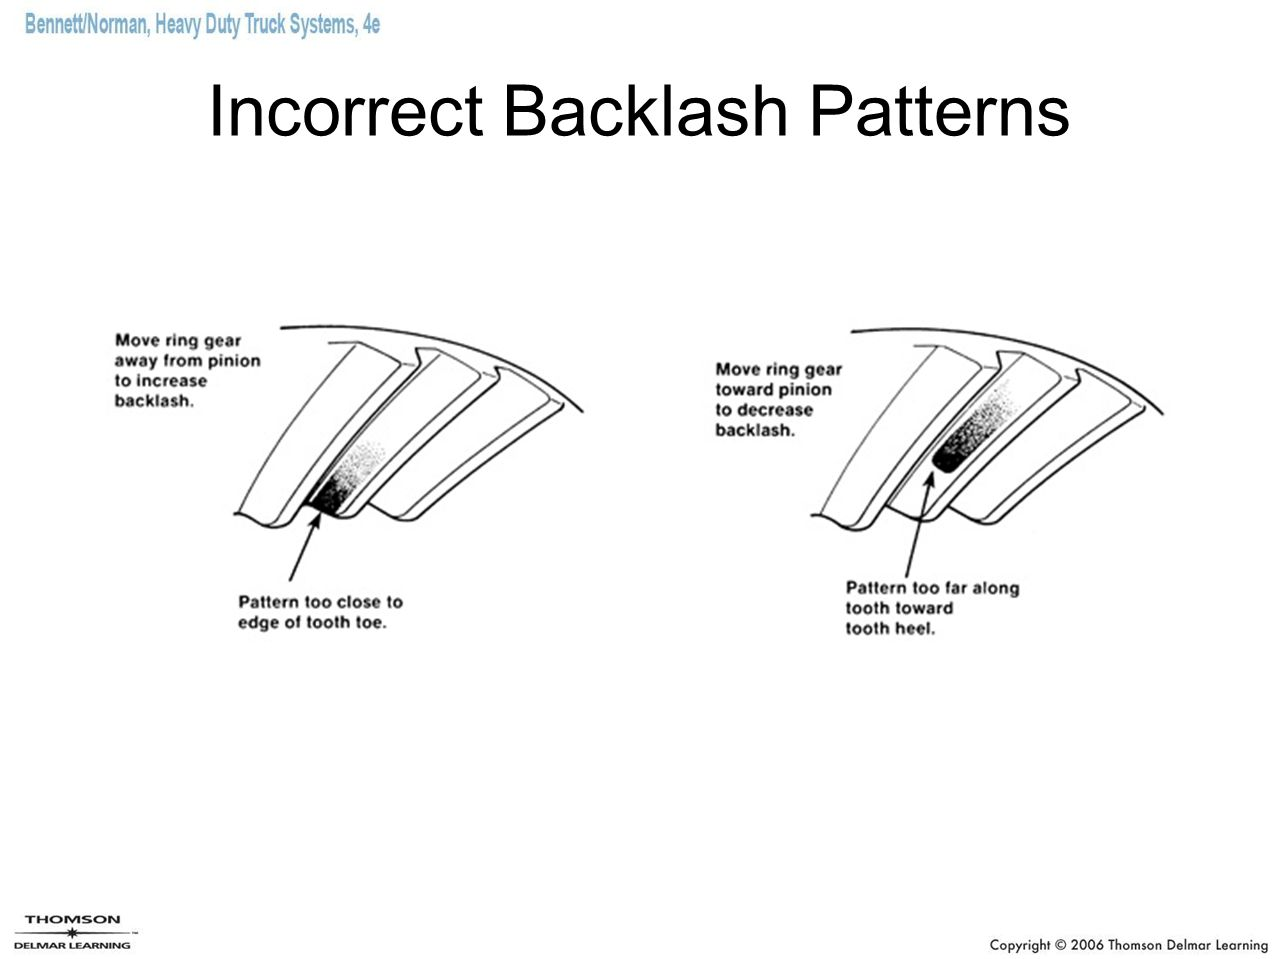 Incorrect Backlash Patterns